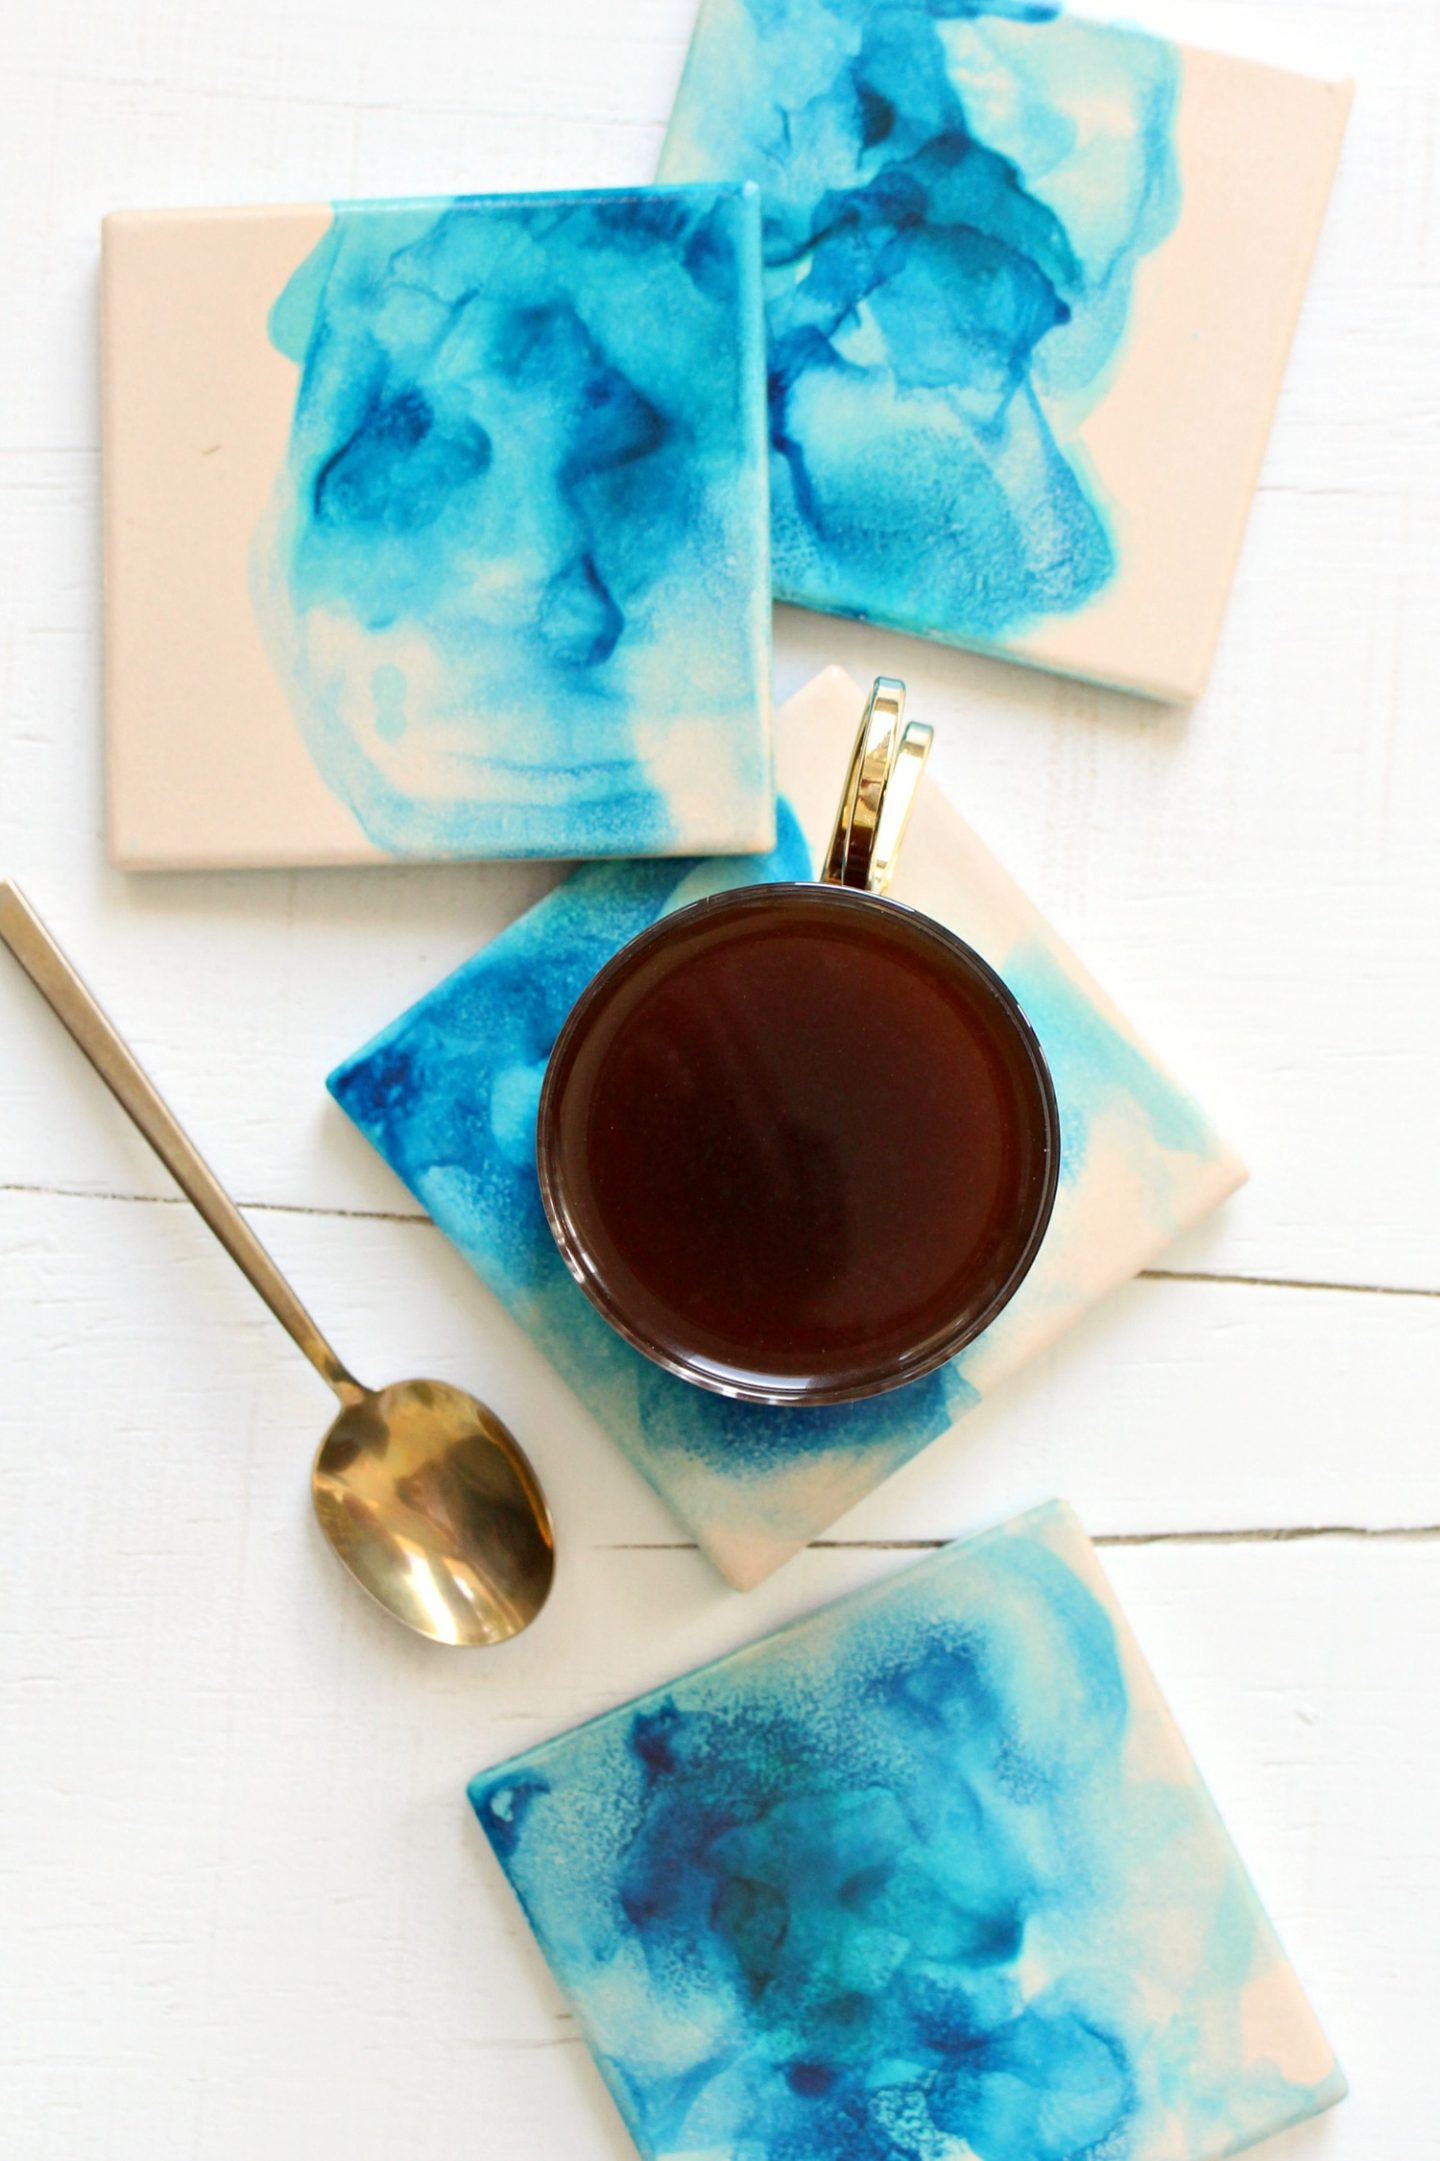 Create a Marbled Effect Using Alcohol Inks